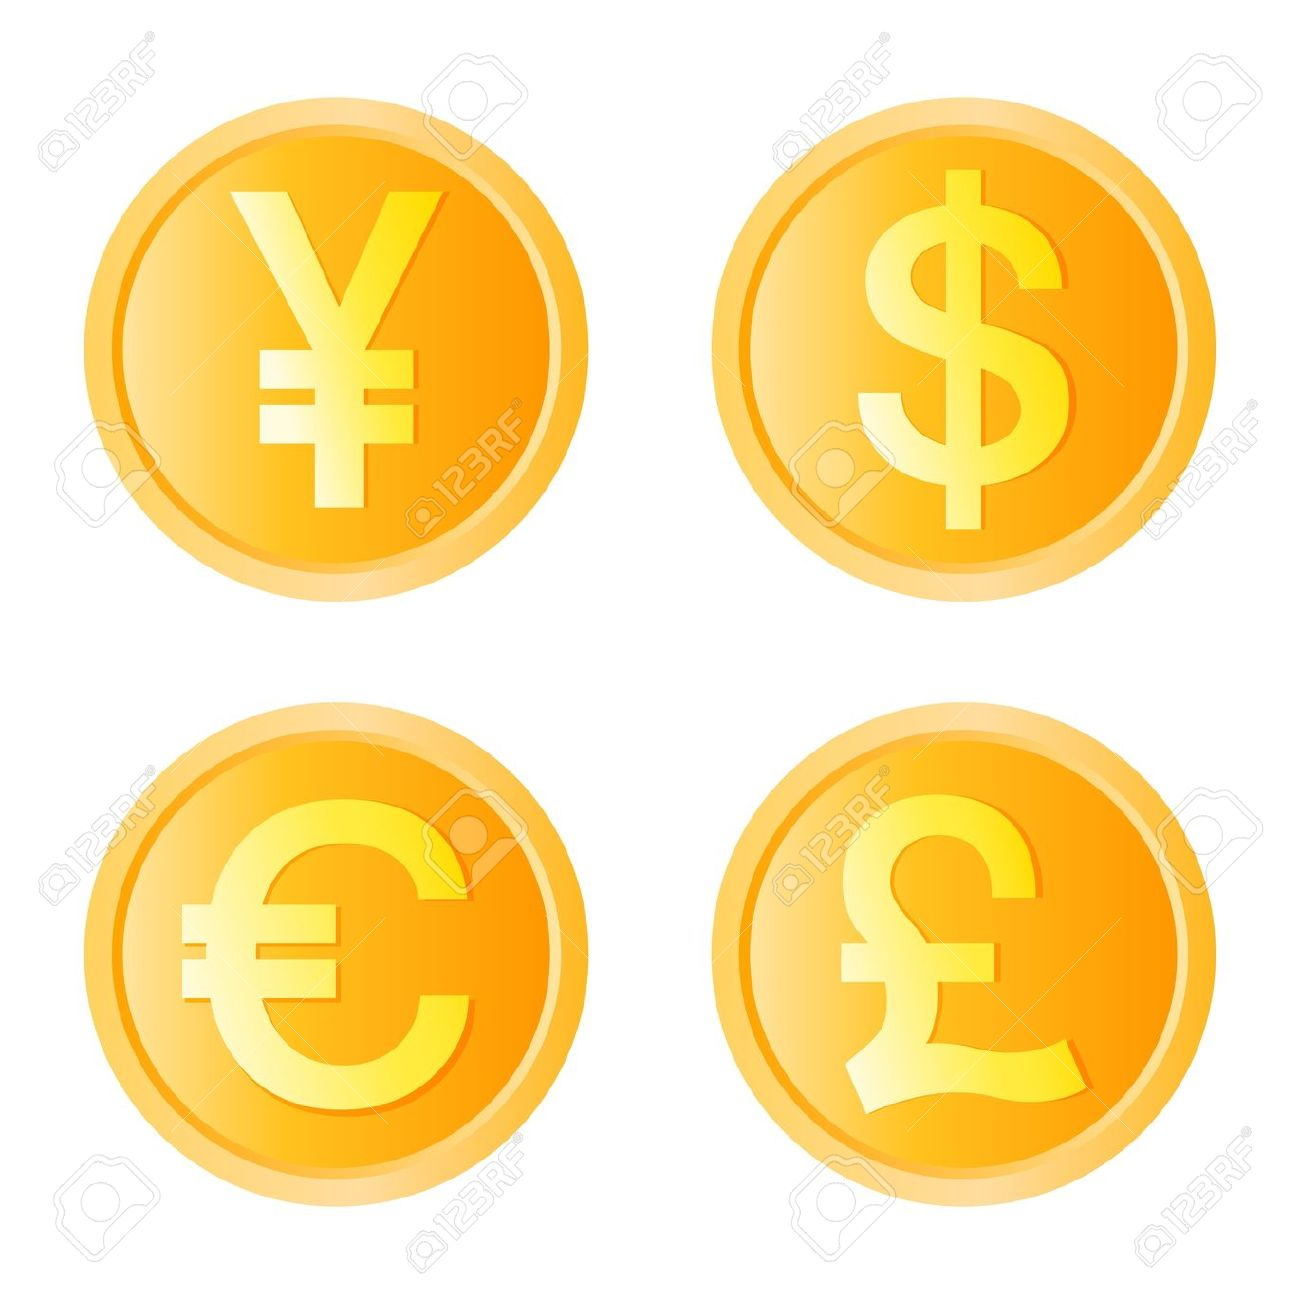 Gold Coin, Four Monetary Unit Vector Royalty Free Cliparts.